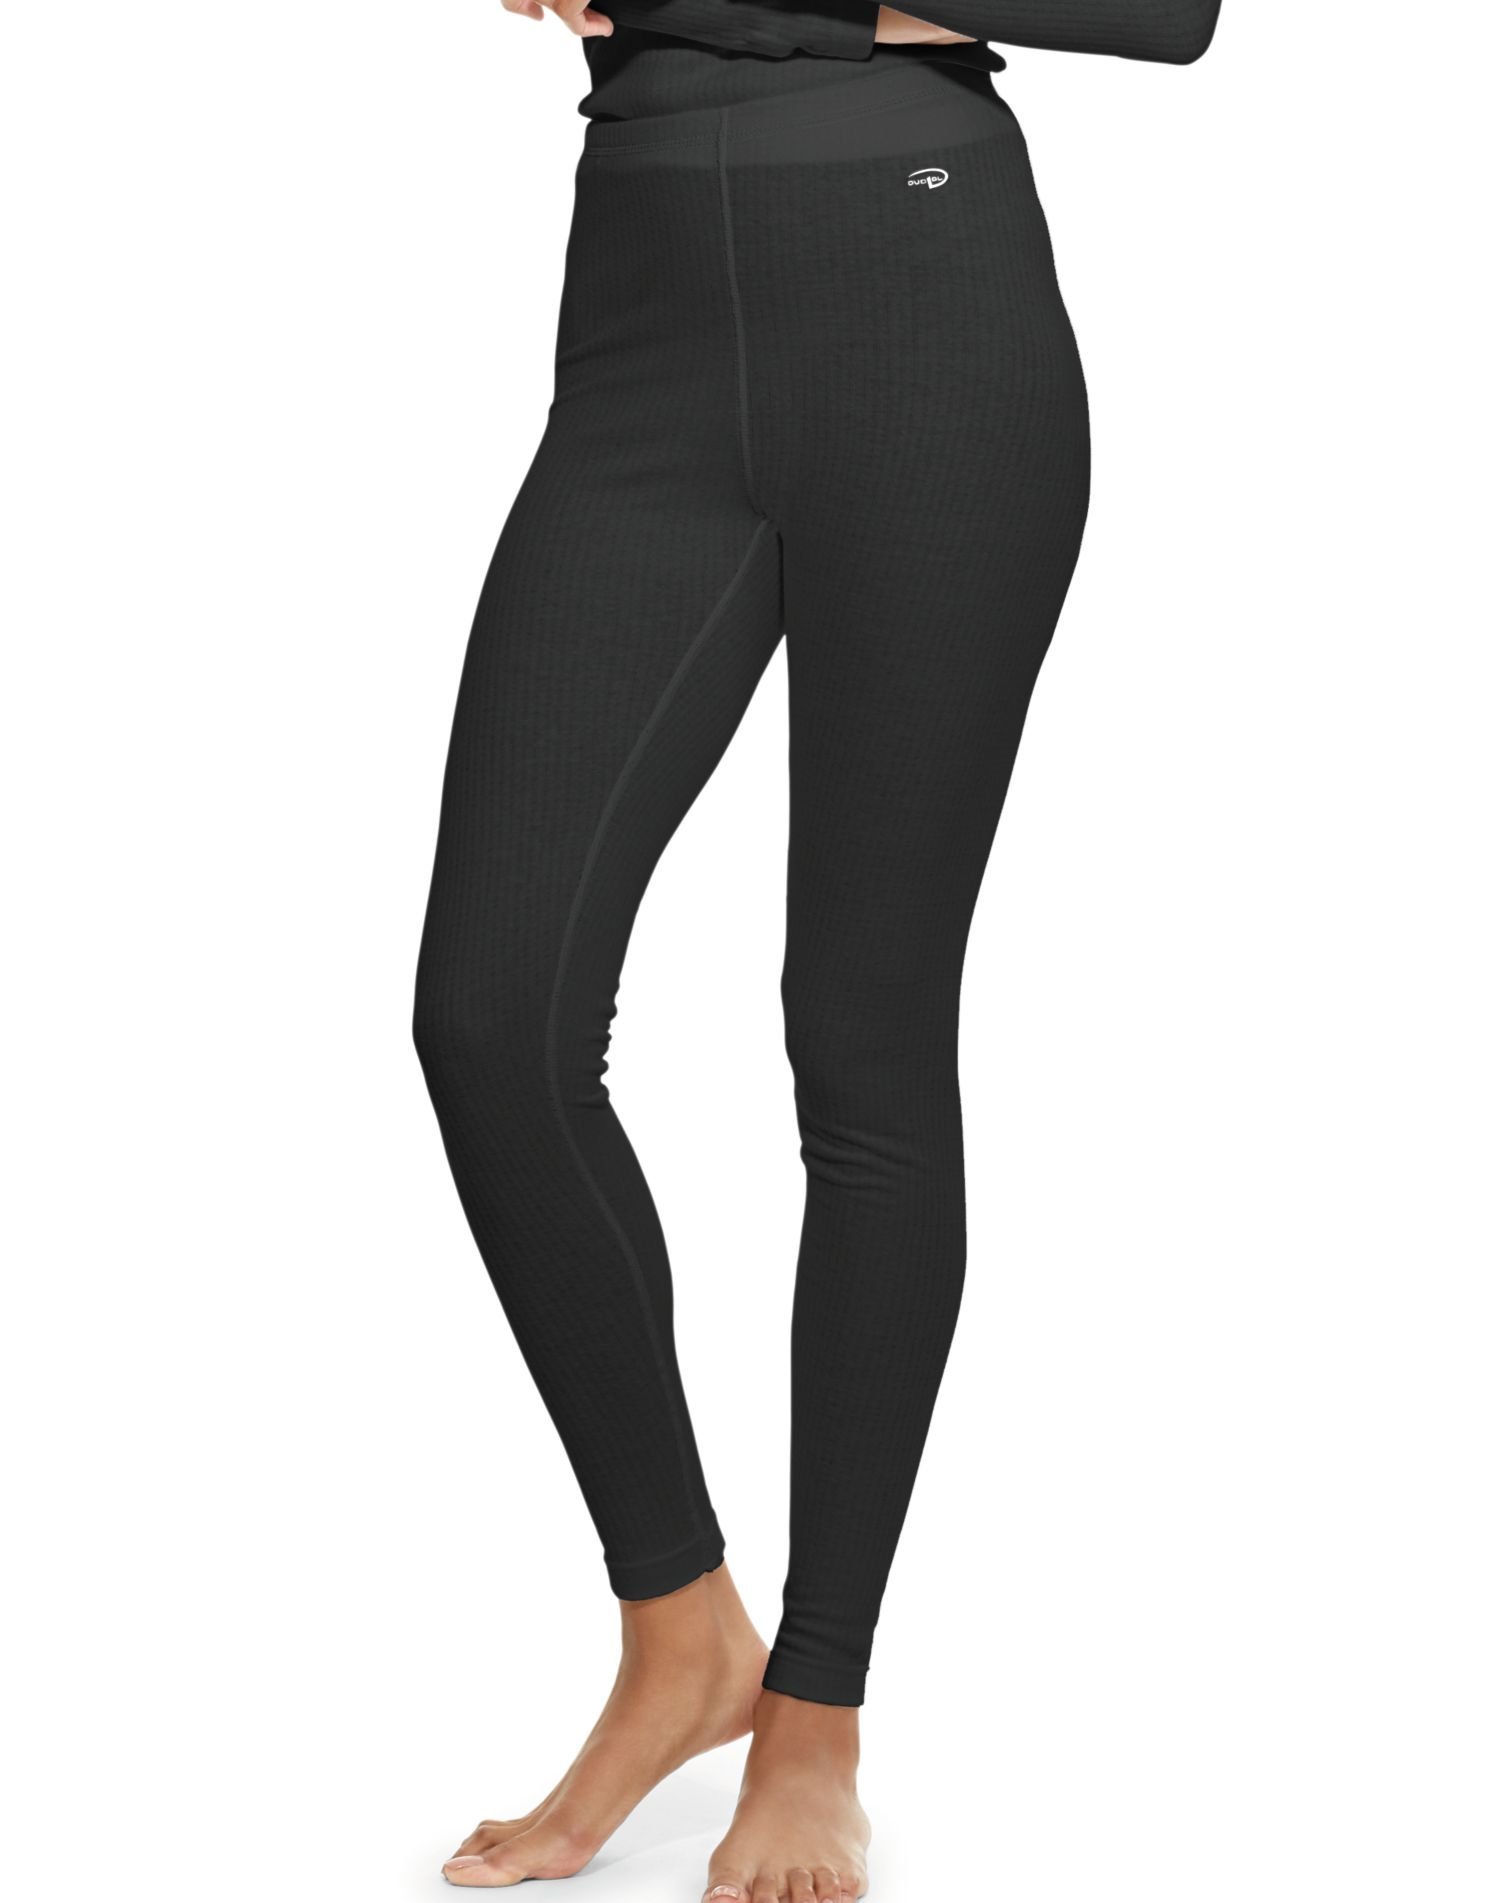 Duofold Women's Mid Weight Wicking Thermal Leggings, Black, X Large by Duofold